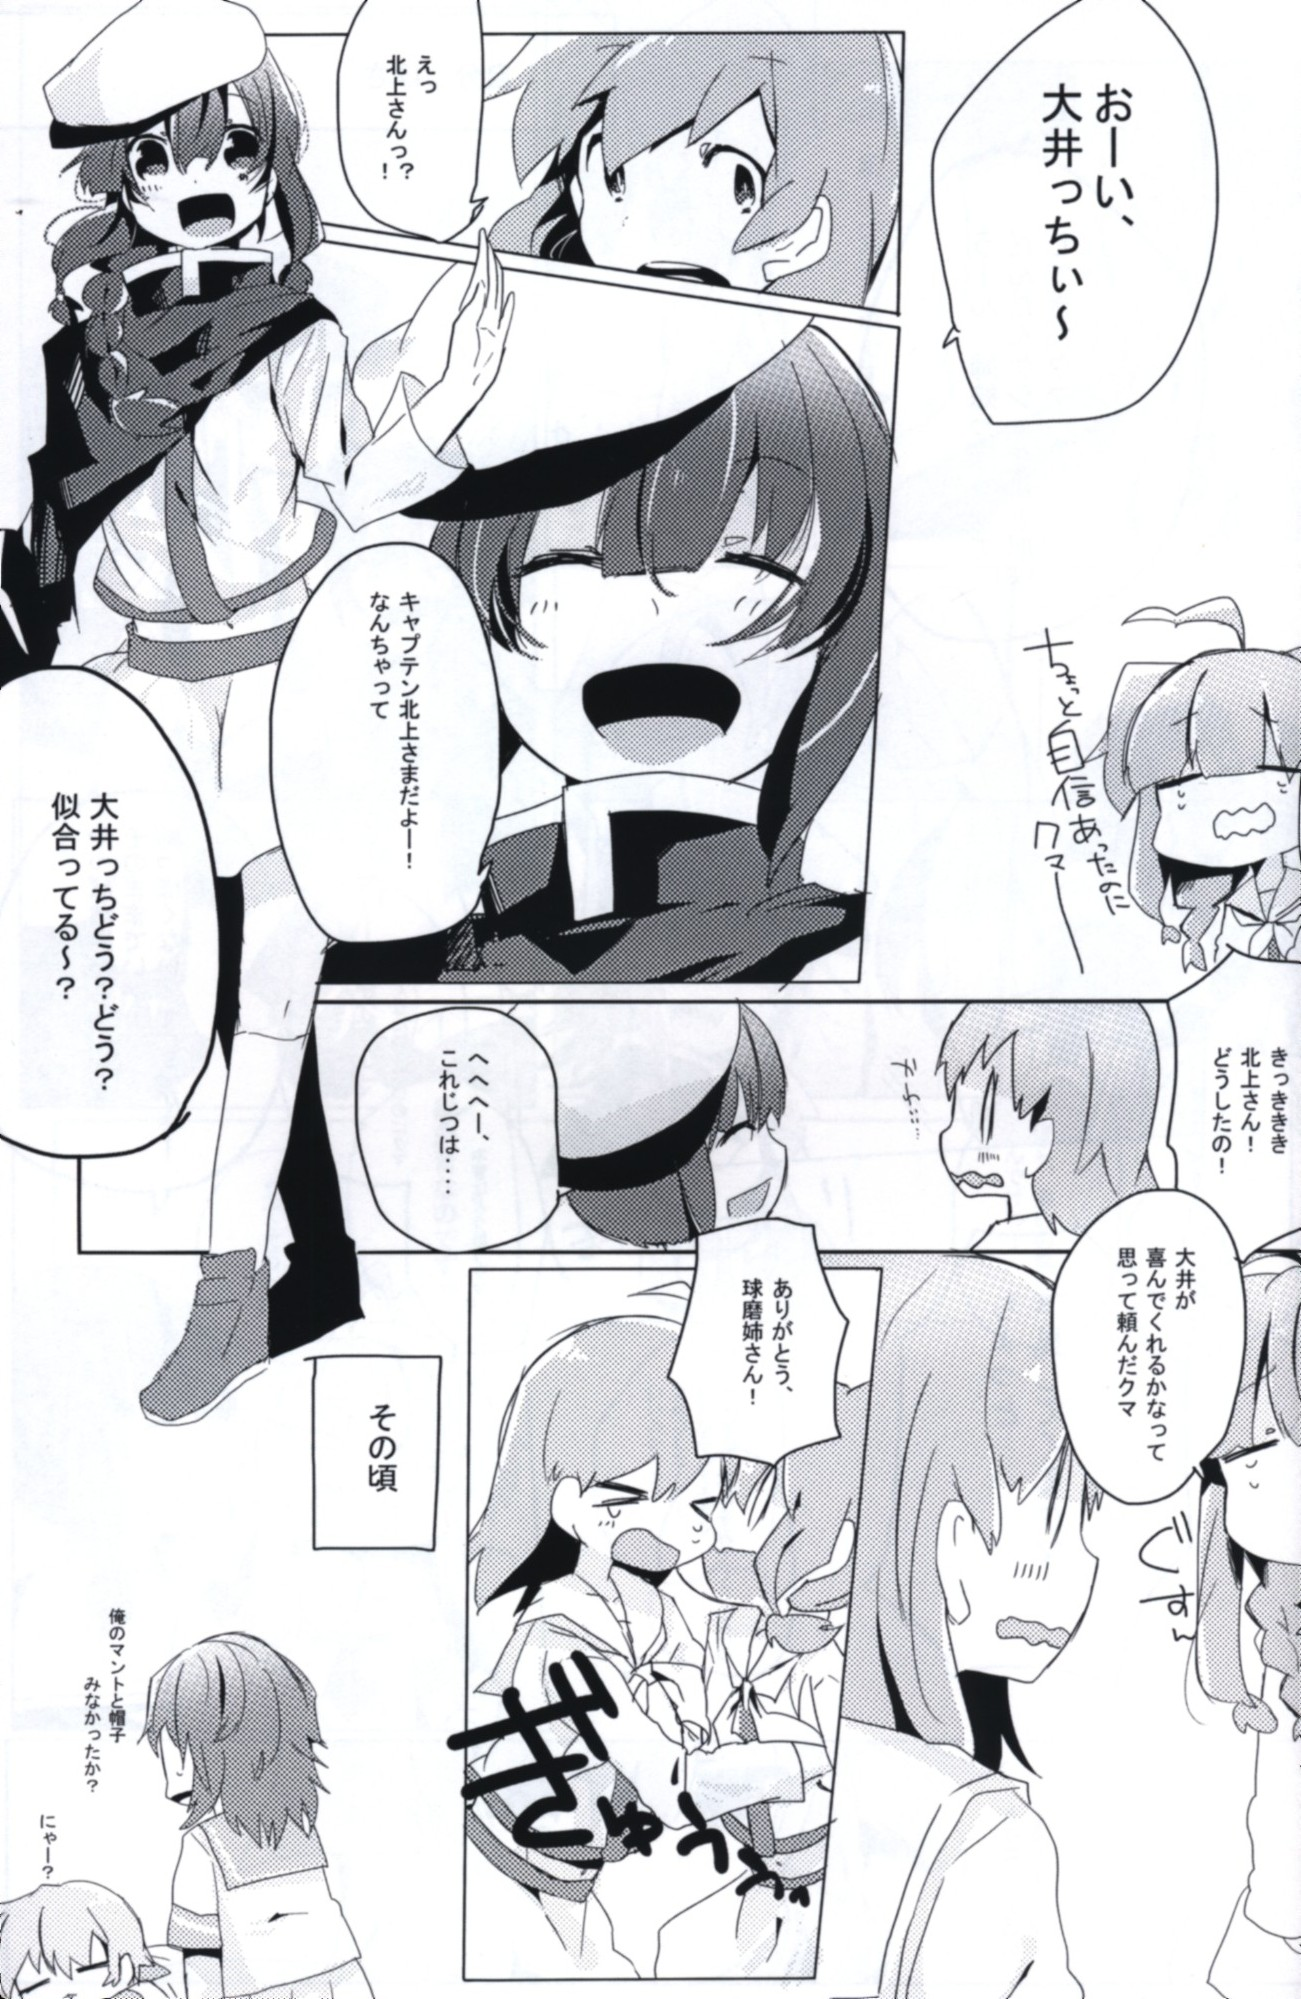 Doujinshi - Kantai Collection / All Characters (Kan Colle) (意外にゆーしゅーな珠磨ねーちゃん) / PATRA